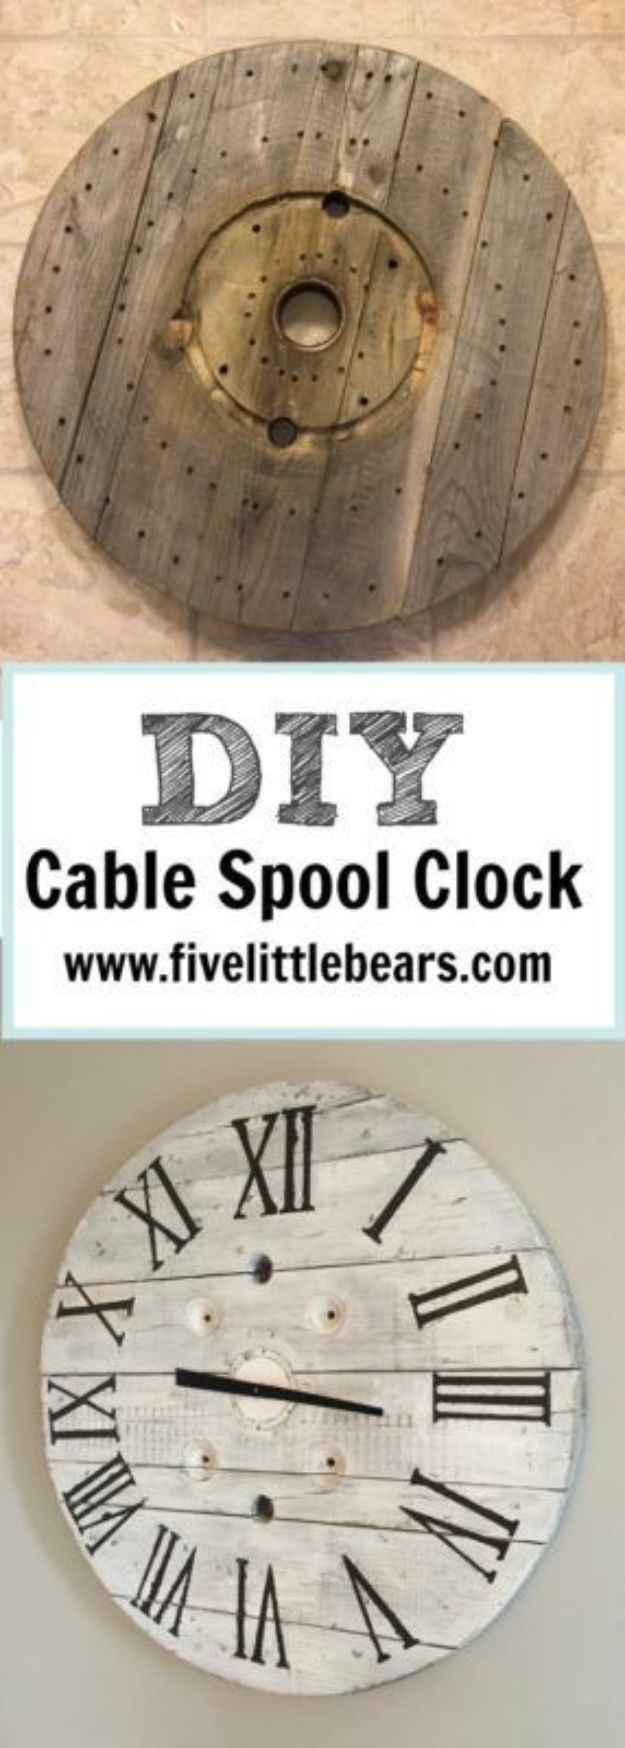 DIY Clocks - DIY Cable Spool Clock - Easy and Cheap Home Decor Ideas and Crafts for Wall Clock - Cool Bedroom and Living Room Decor, Farmhouse and Modern